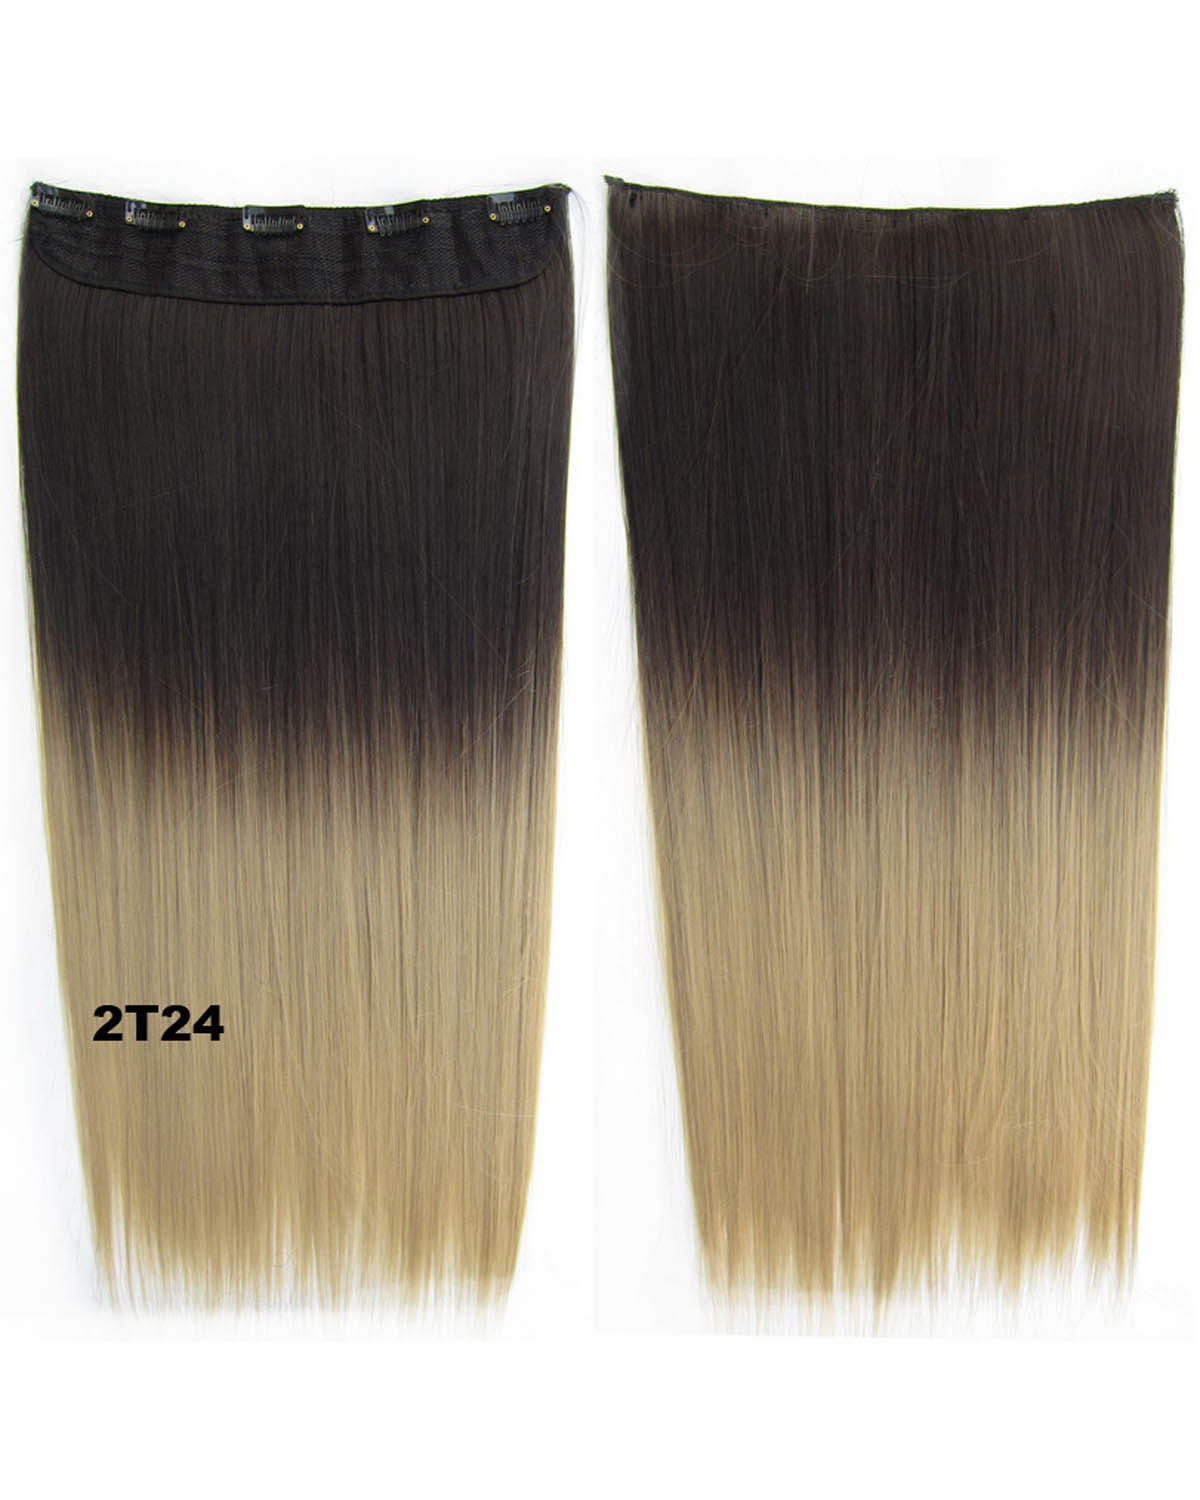 24 Inch Female Popular and Clean Long Straight One Piece 5 Clips Clip in Synthetic Hair Extension Ombre GS-666 2T24